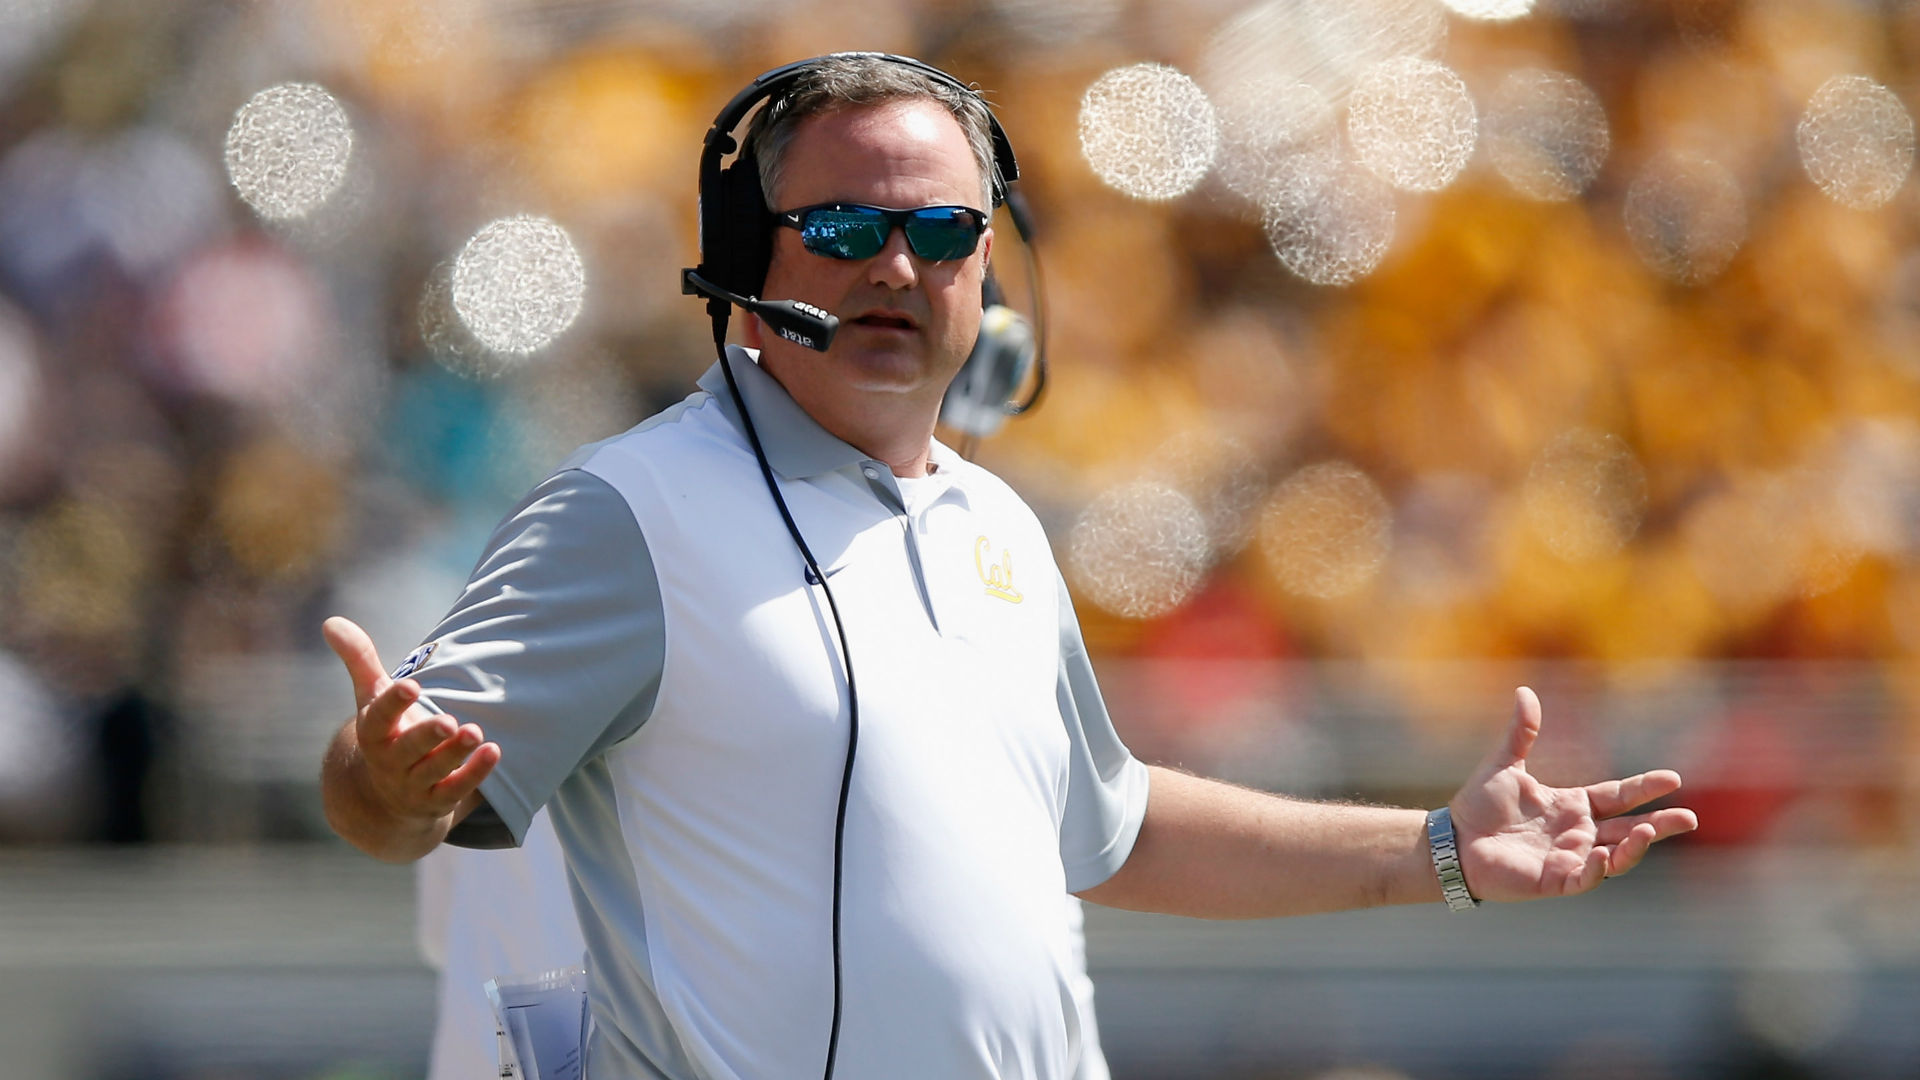 SMU Hiring Sonny Dykes As Next Head Coach